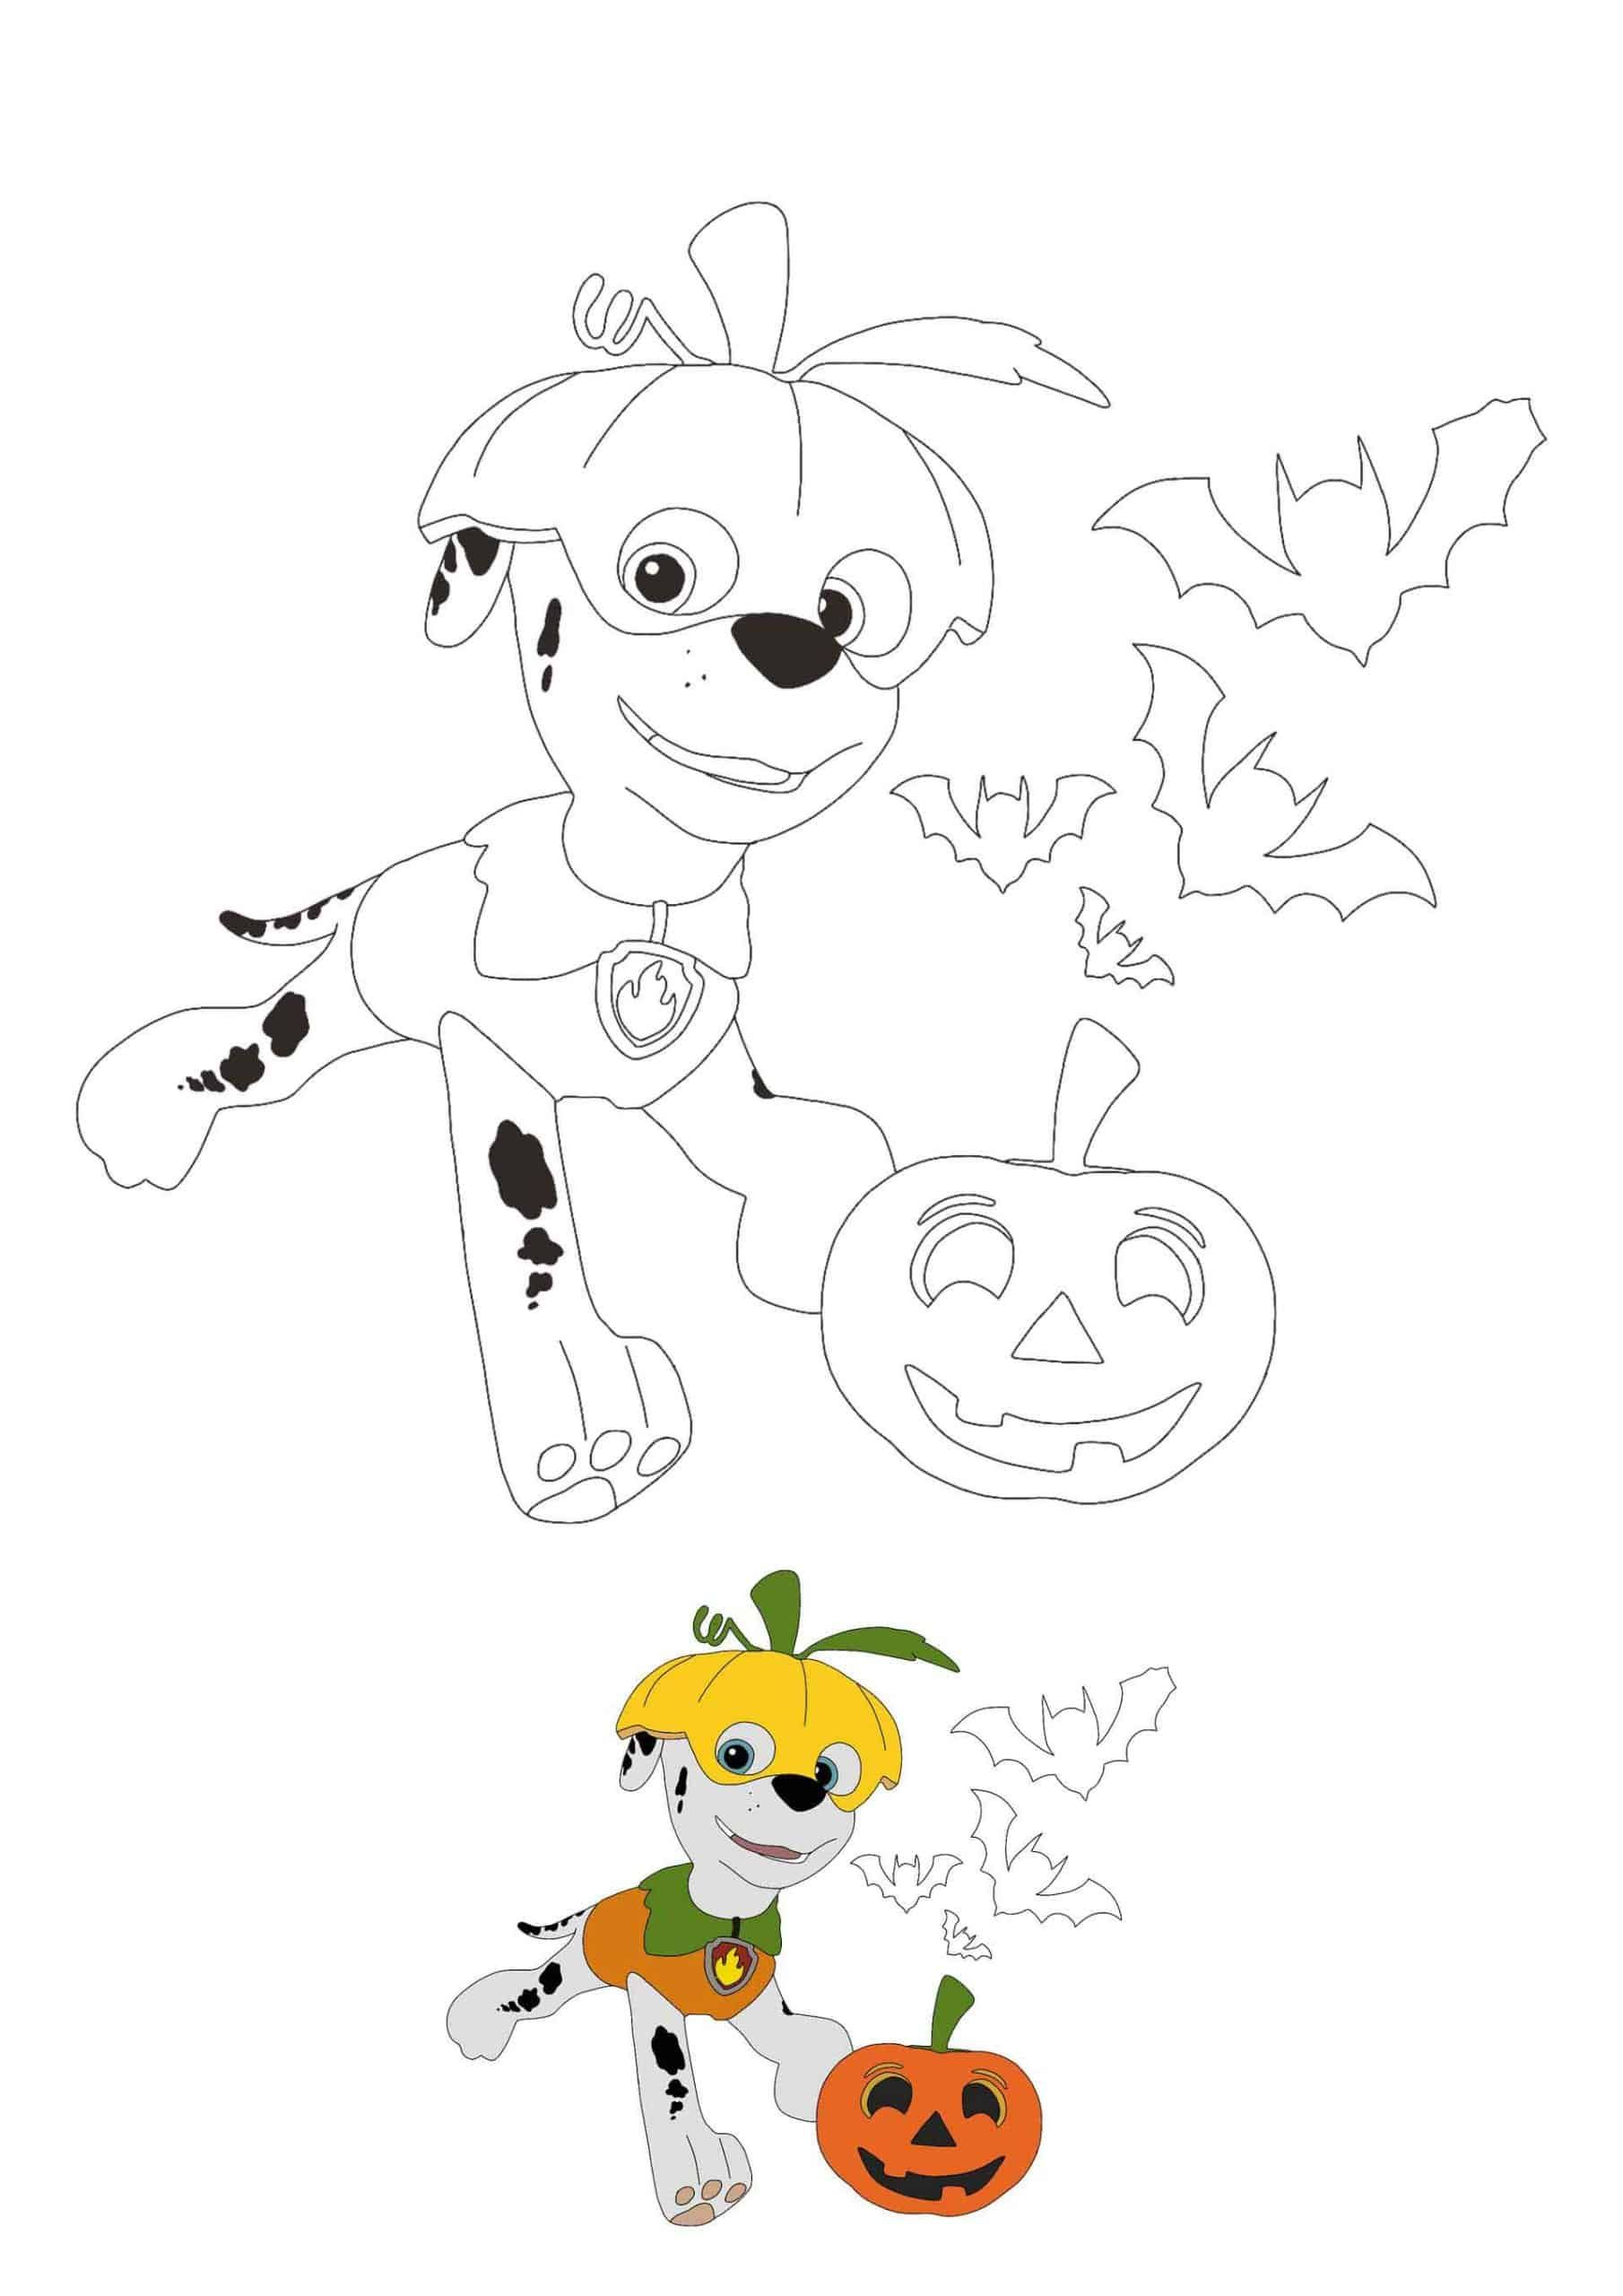 Paw Patrol Halloween Coloring Pages Paw Patrol Coloring Pages Halloween Coloring Pages Paw Patrol Coloring